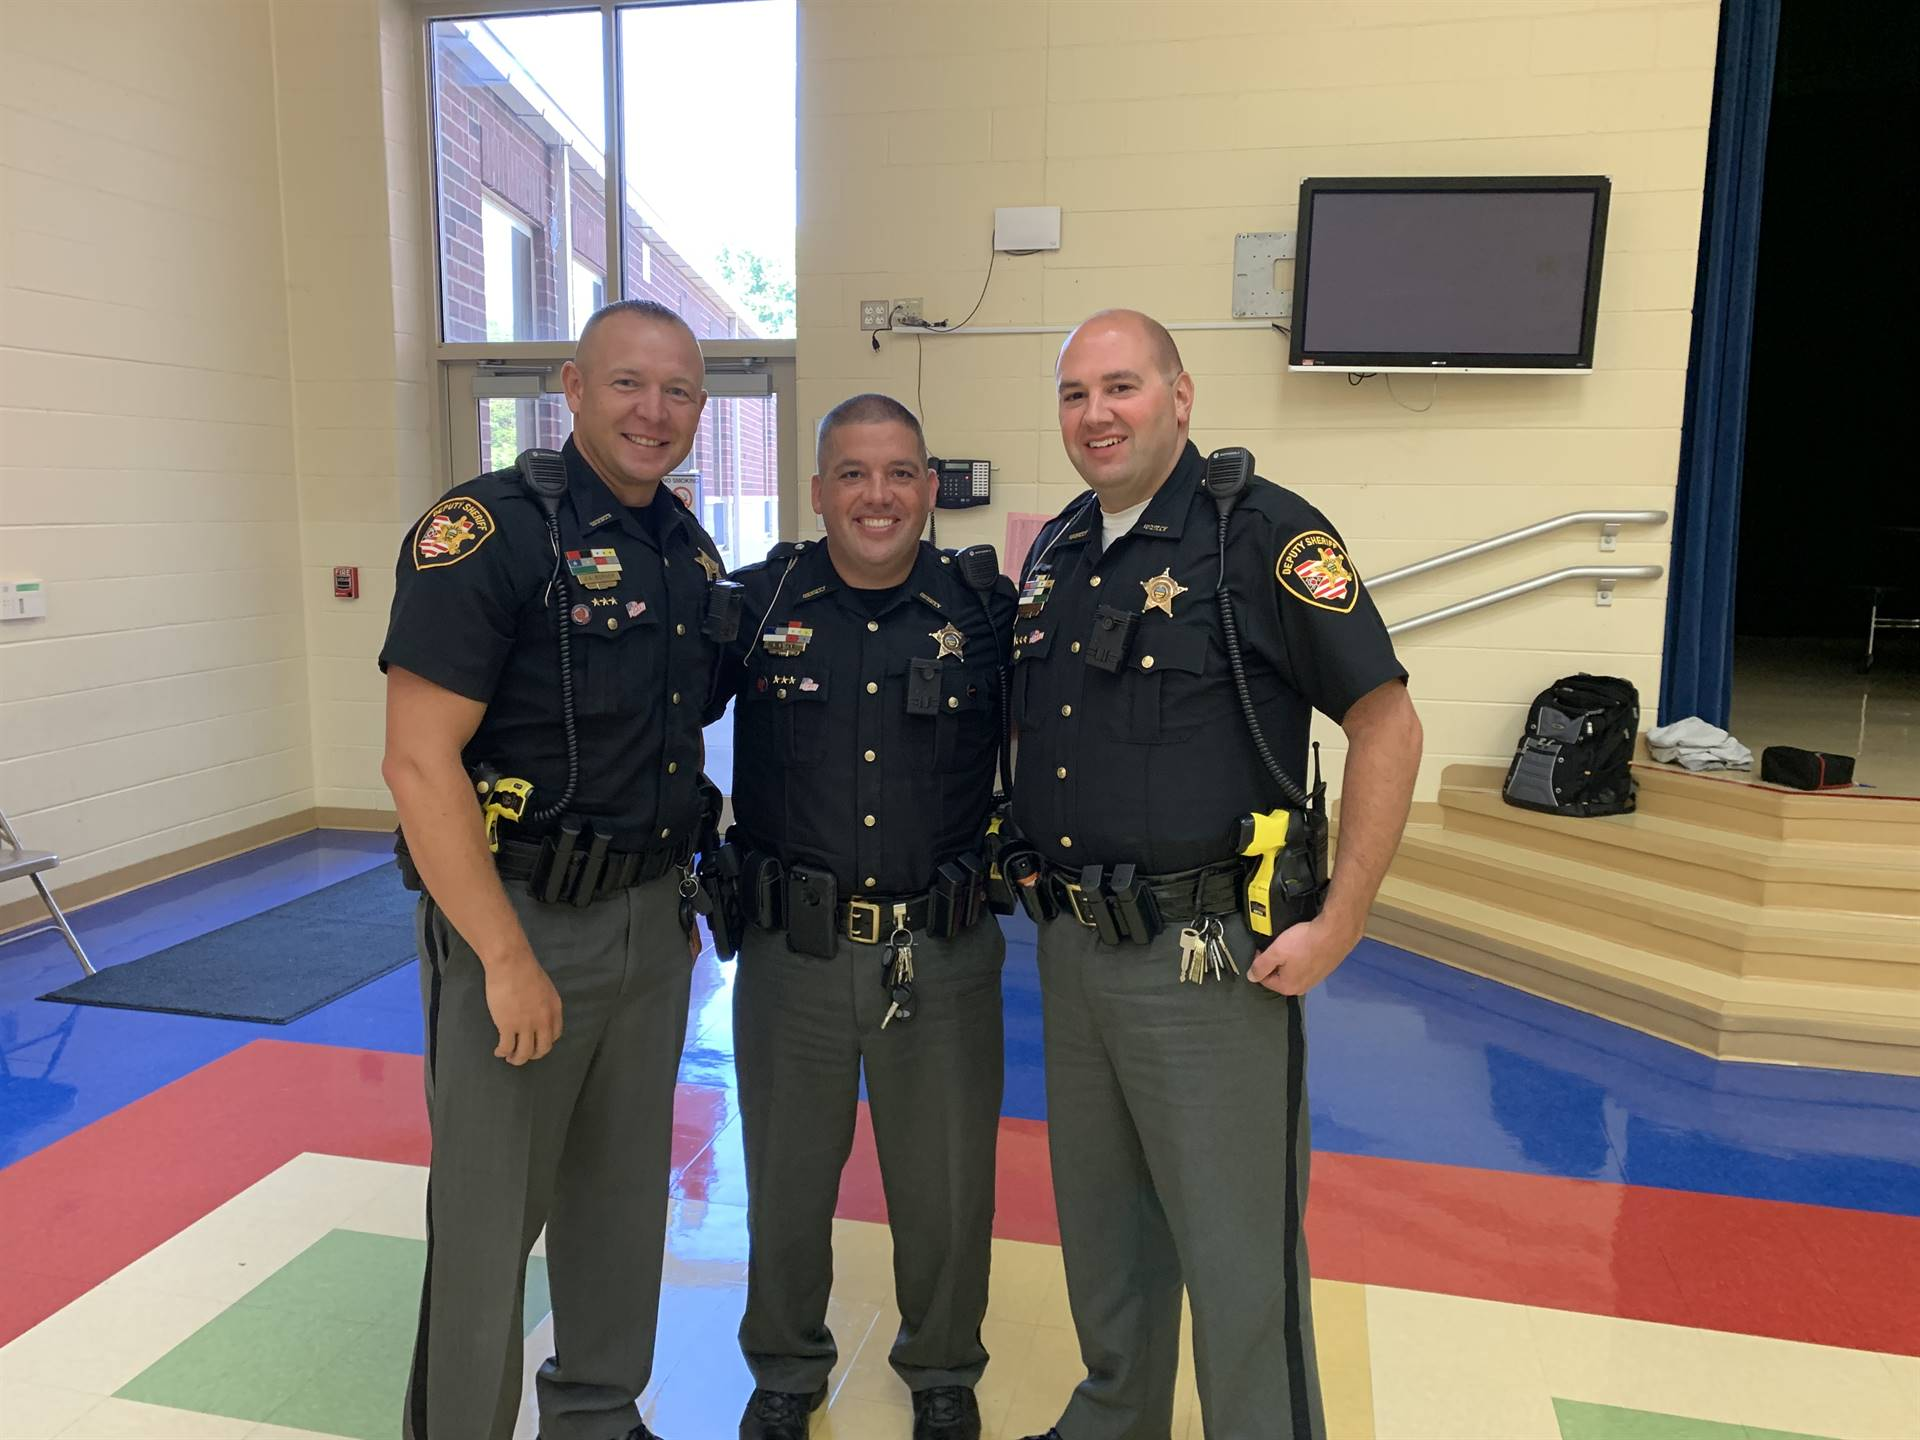 Three officers posing for a photo at NCE